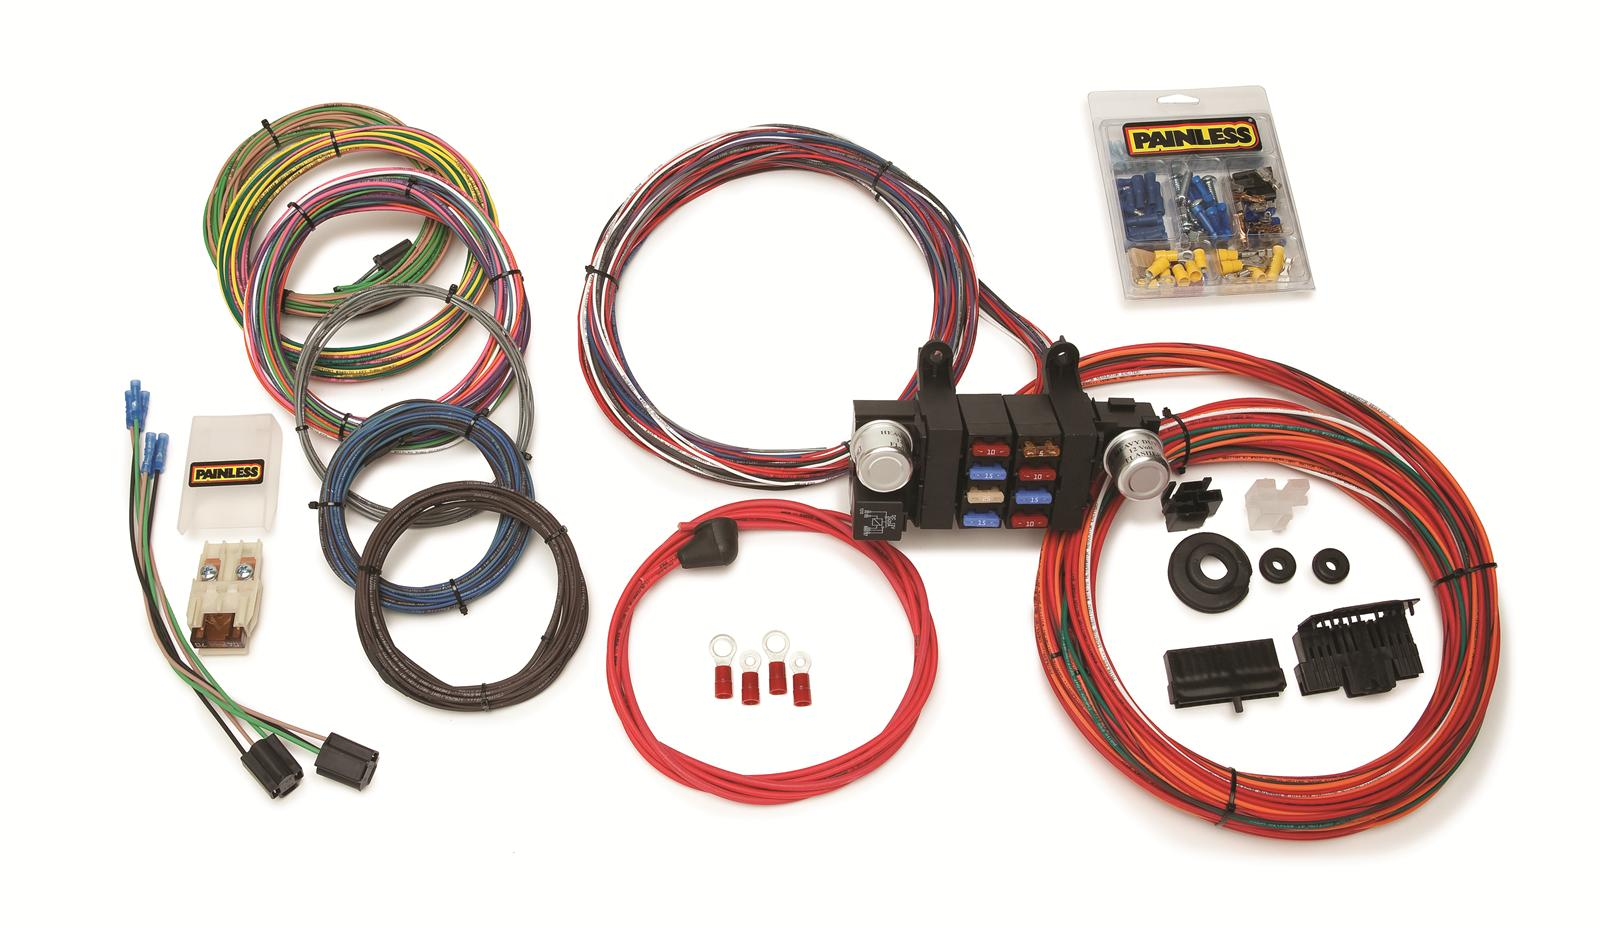 Universal Painless Wiring Harness Diagram Trusted And Chassis U2022 Xs Torque